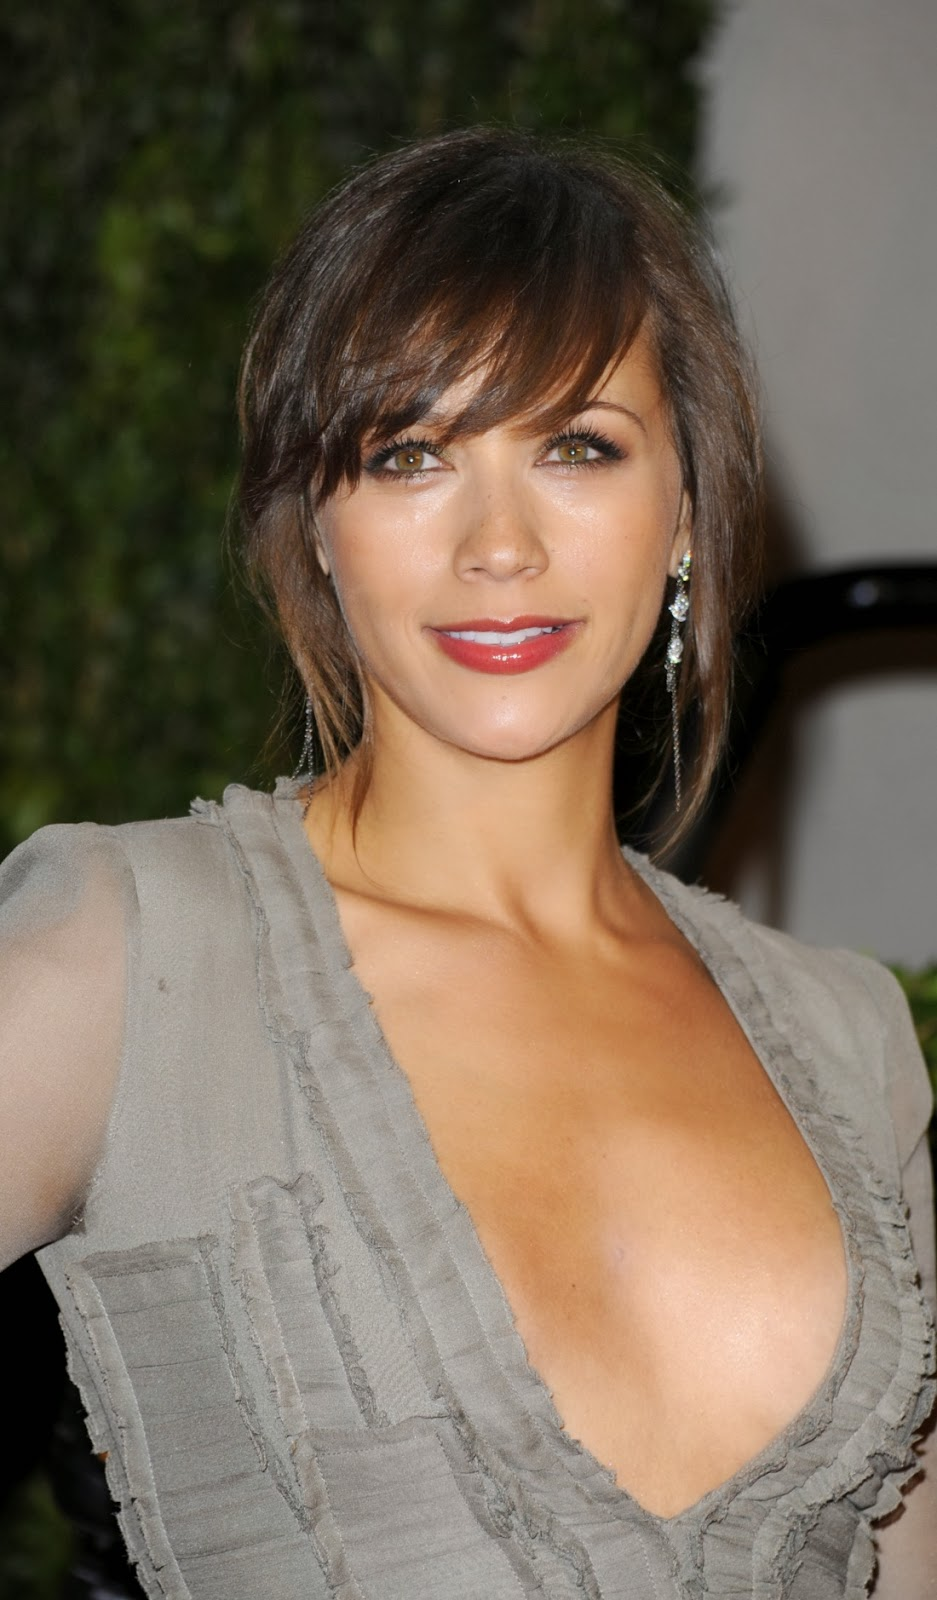 Pity, rashida jones hot with